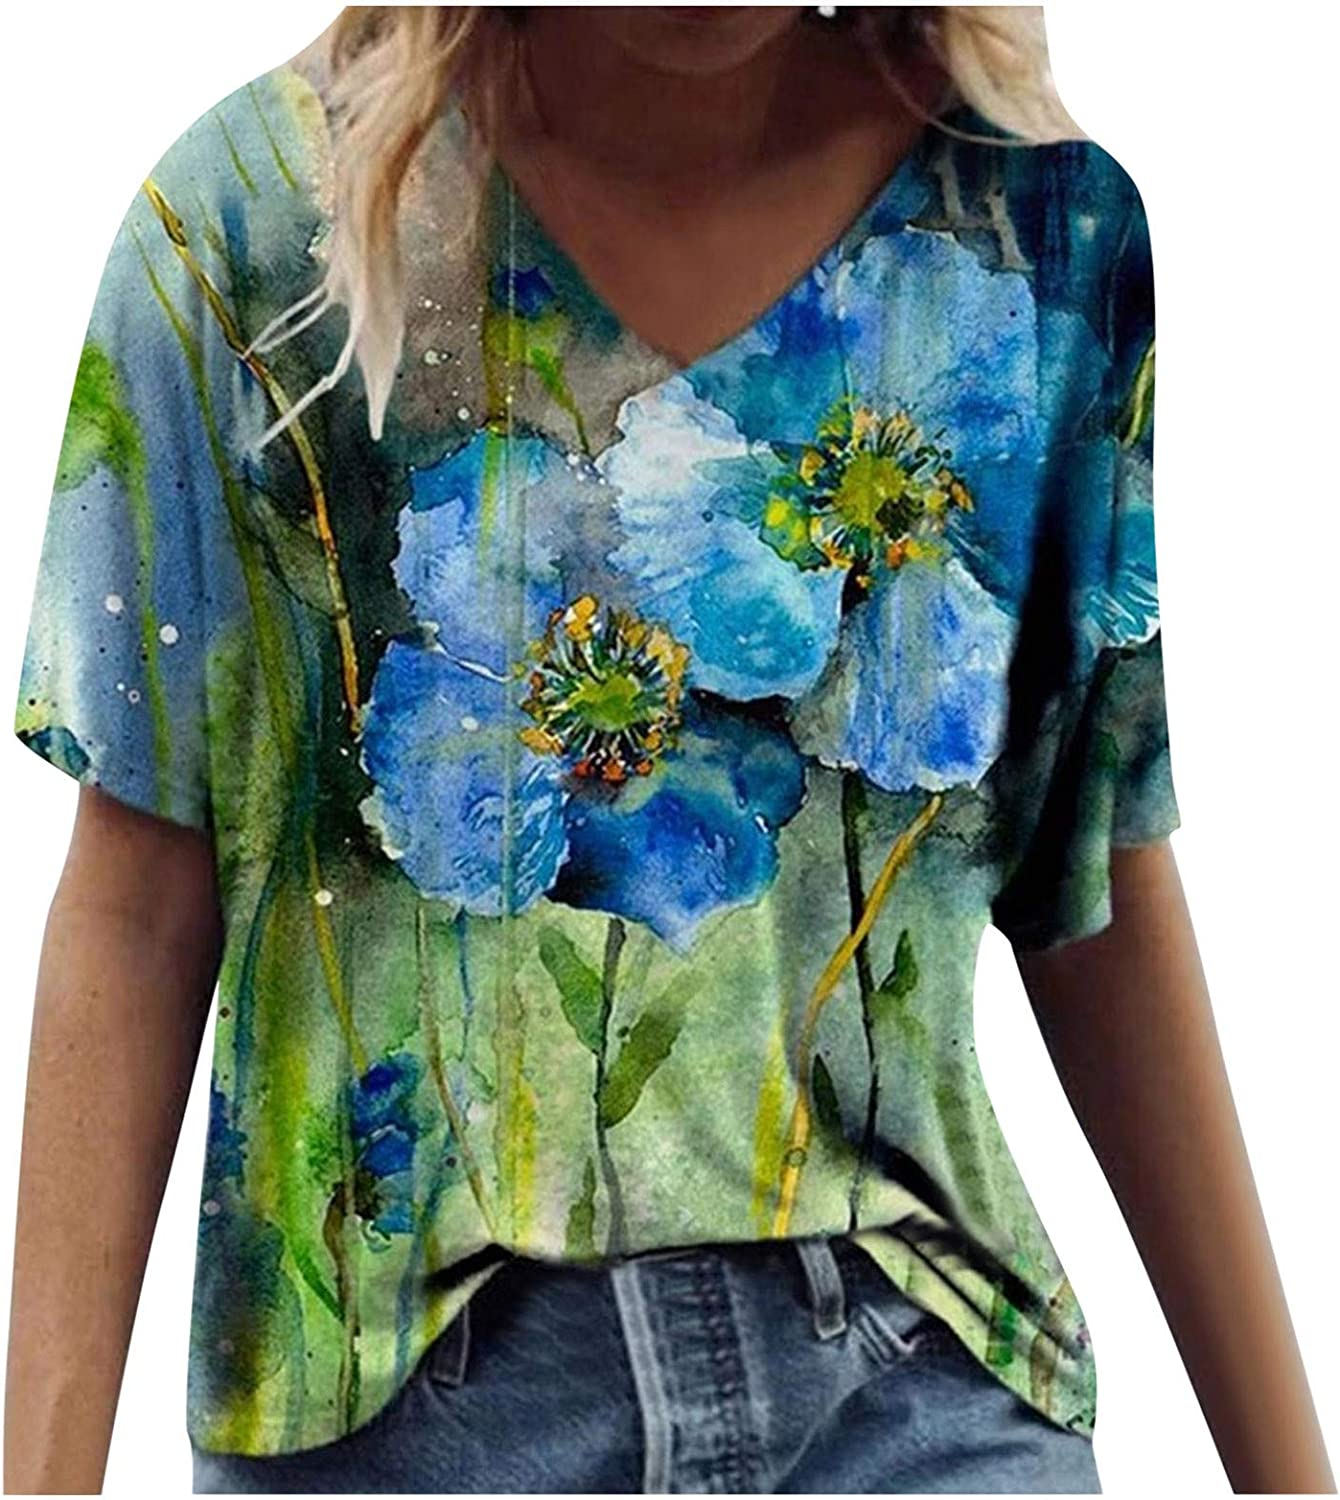 Short Sleeve T-Shirts for Women, Women's Casual Summer Graphic Tees Vintage Flower Print Soft Tunic Shirts Blouse Top